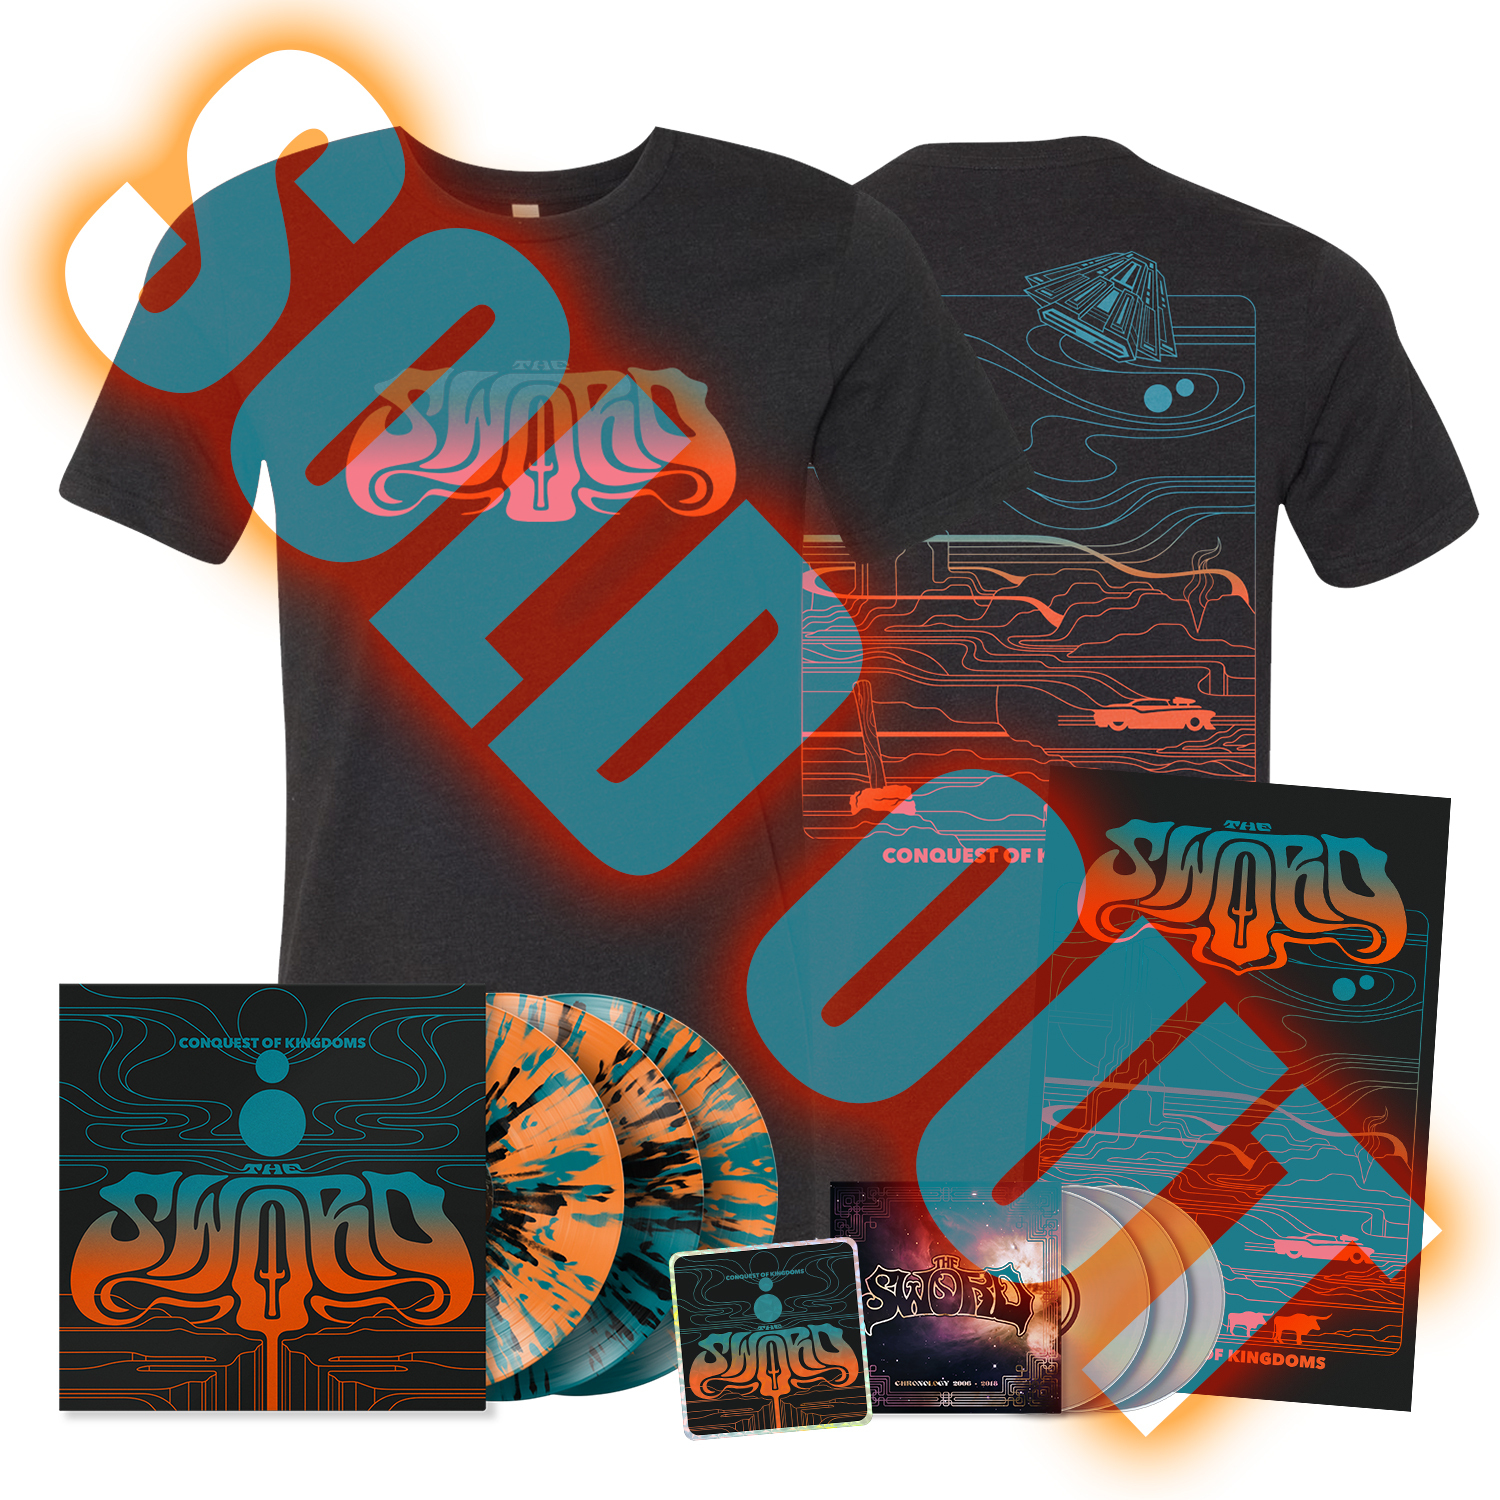 Deluxe Limited Edition Bundle